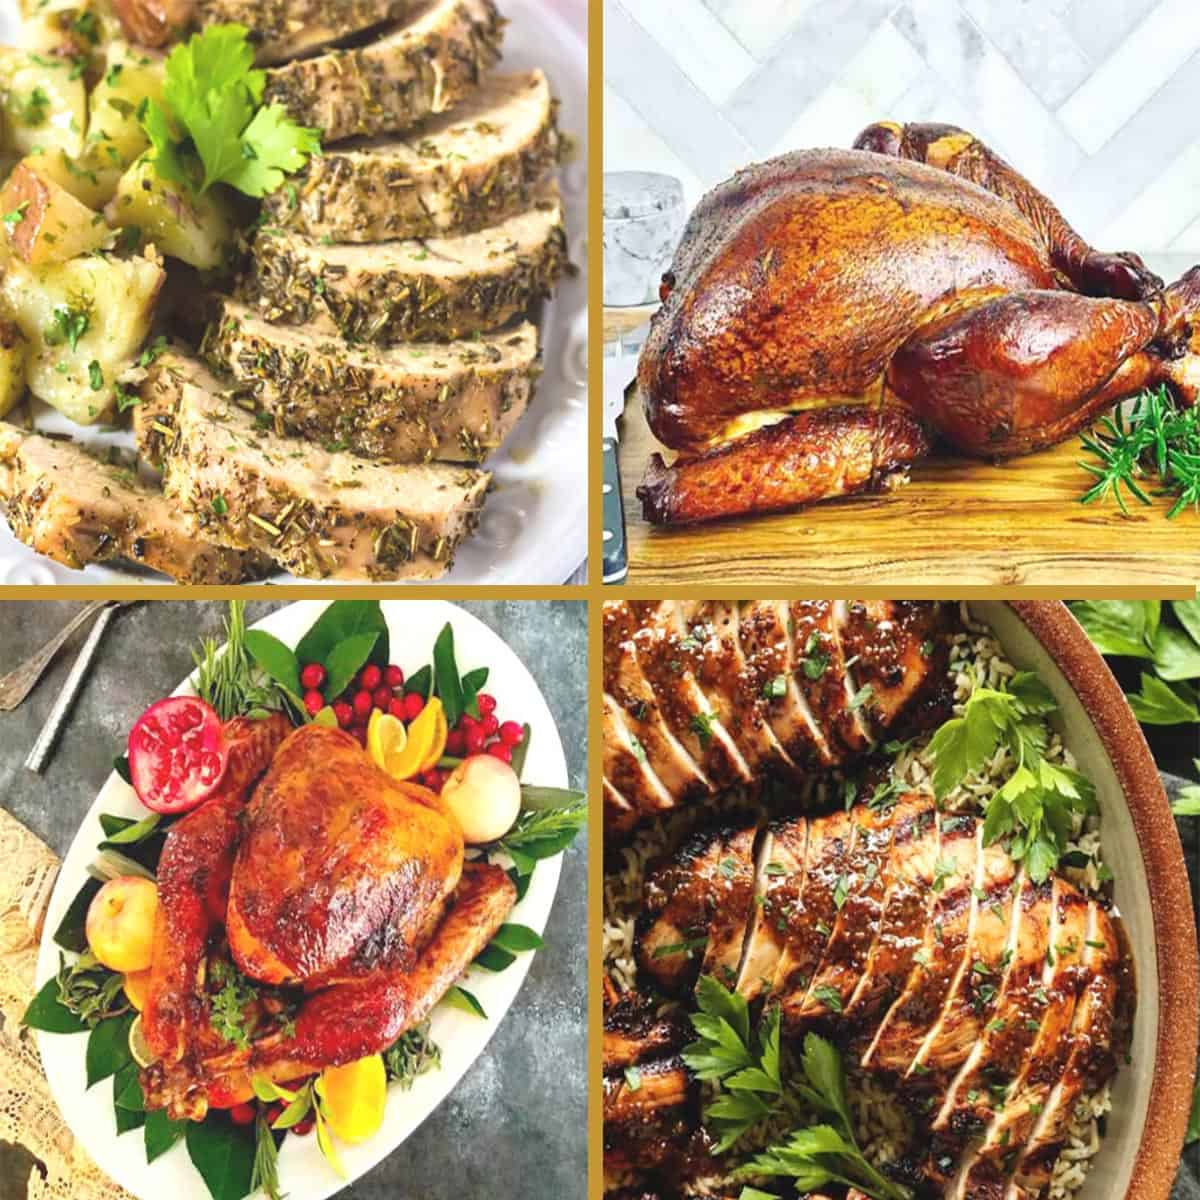 4 photos of turkeys cooked 4 different ways.